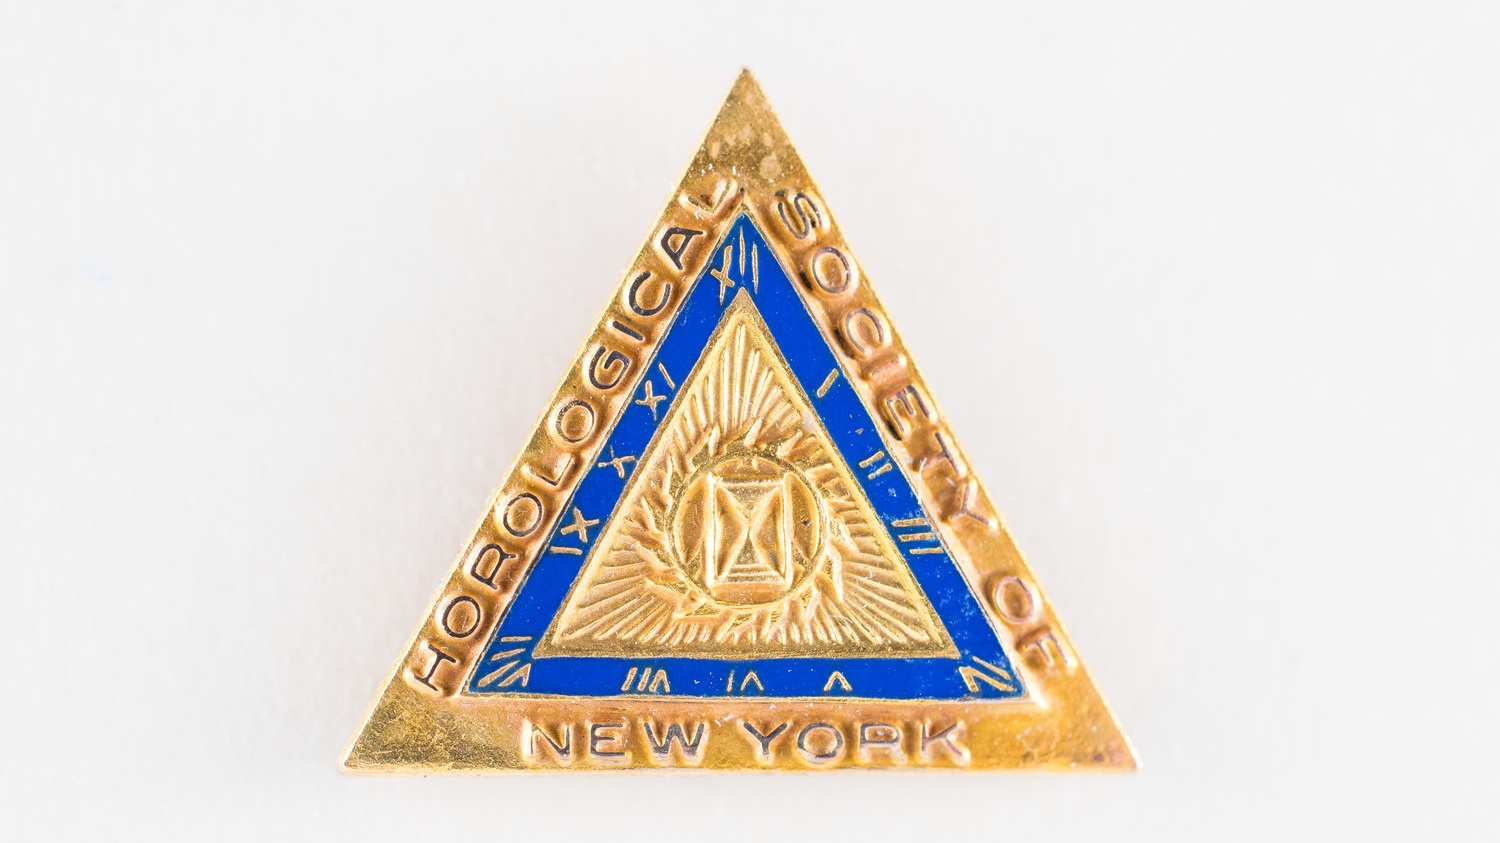 Lot 1 - Horological Society of New York Vintage Lapel Pin, Circa 1930  Only a handful of these original pins still exist. Gold-filled, brand new, never worn.  Estimate: $1,000 - $2,000